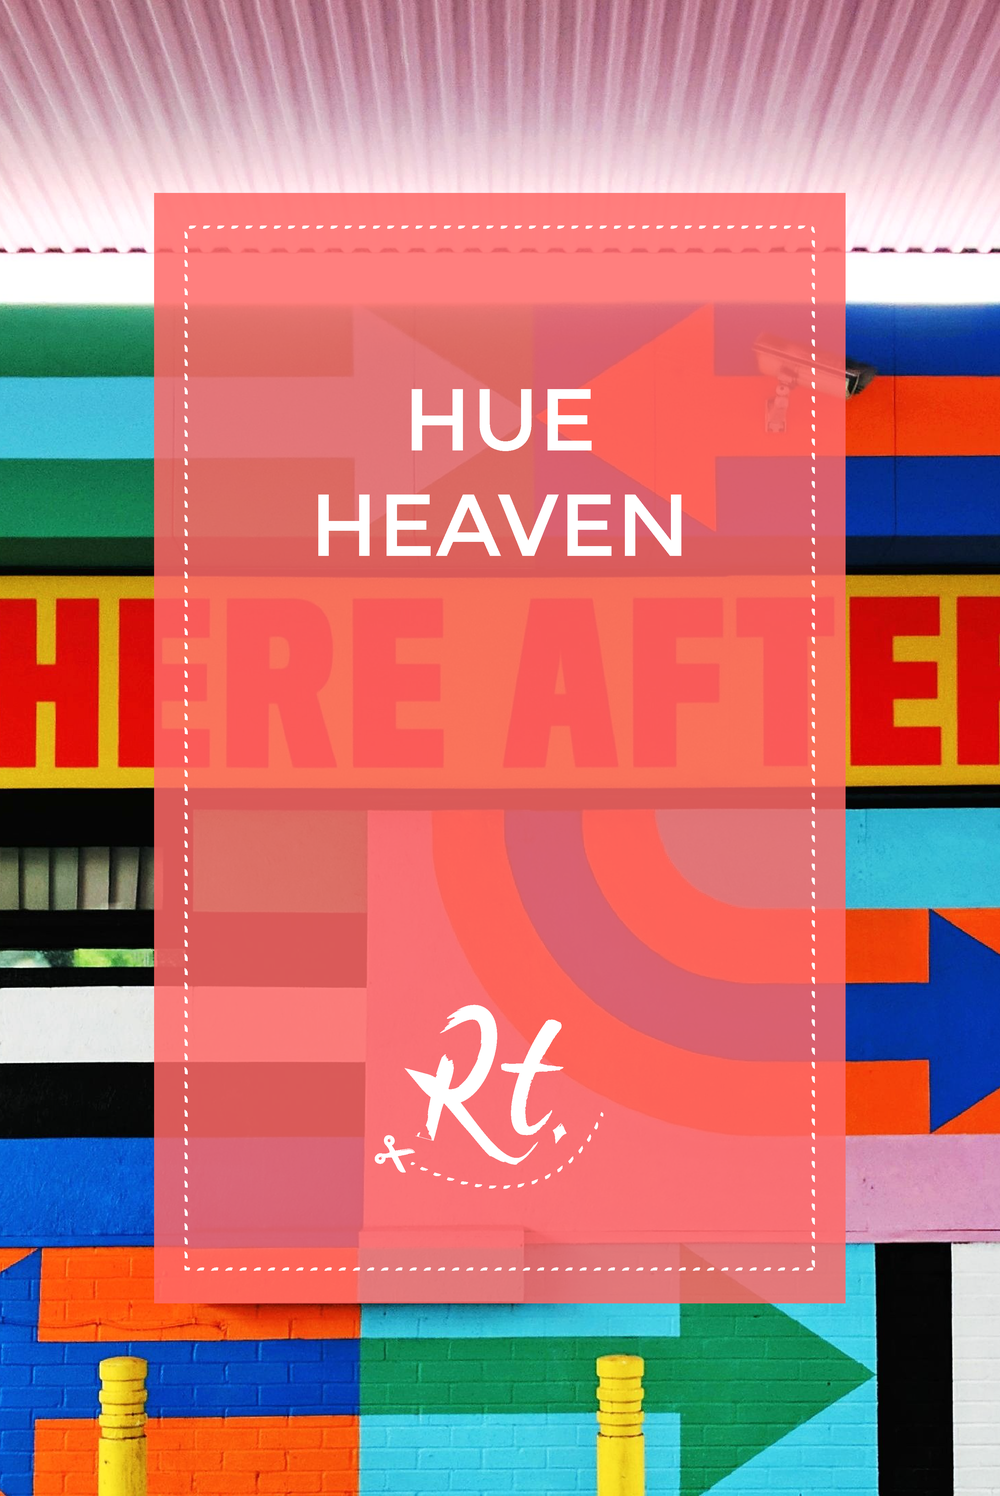 Hue Heaven by Rosh Thanki, Craig and Karl White City, Here After street art